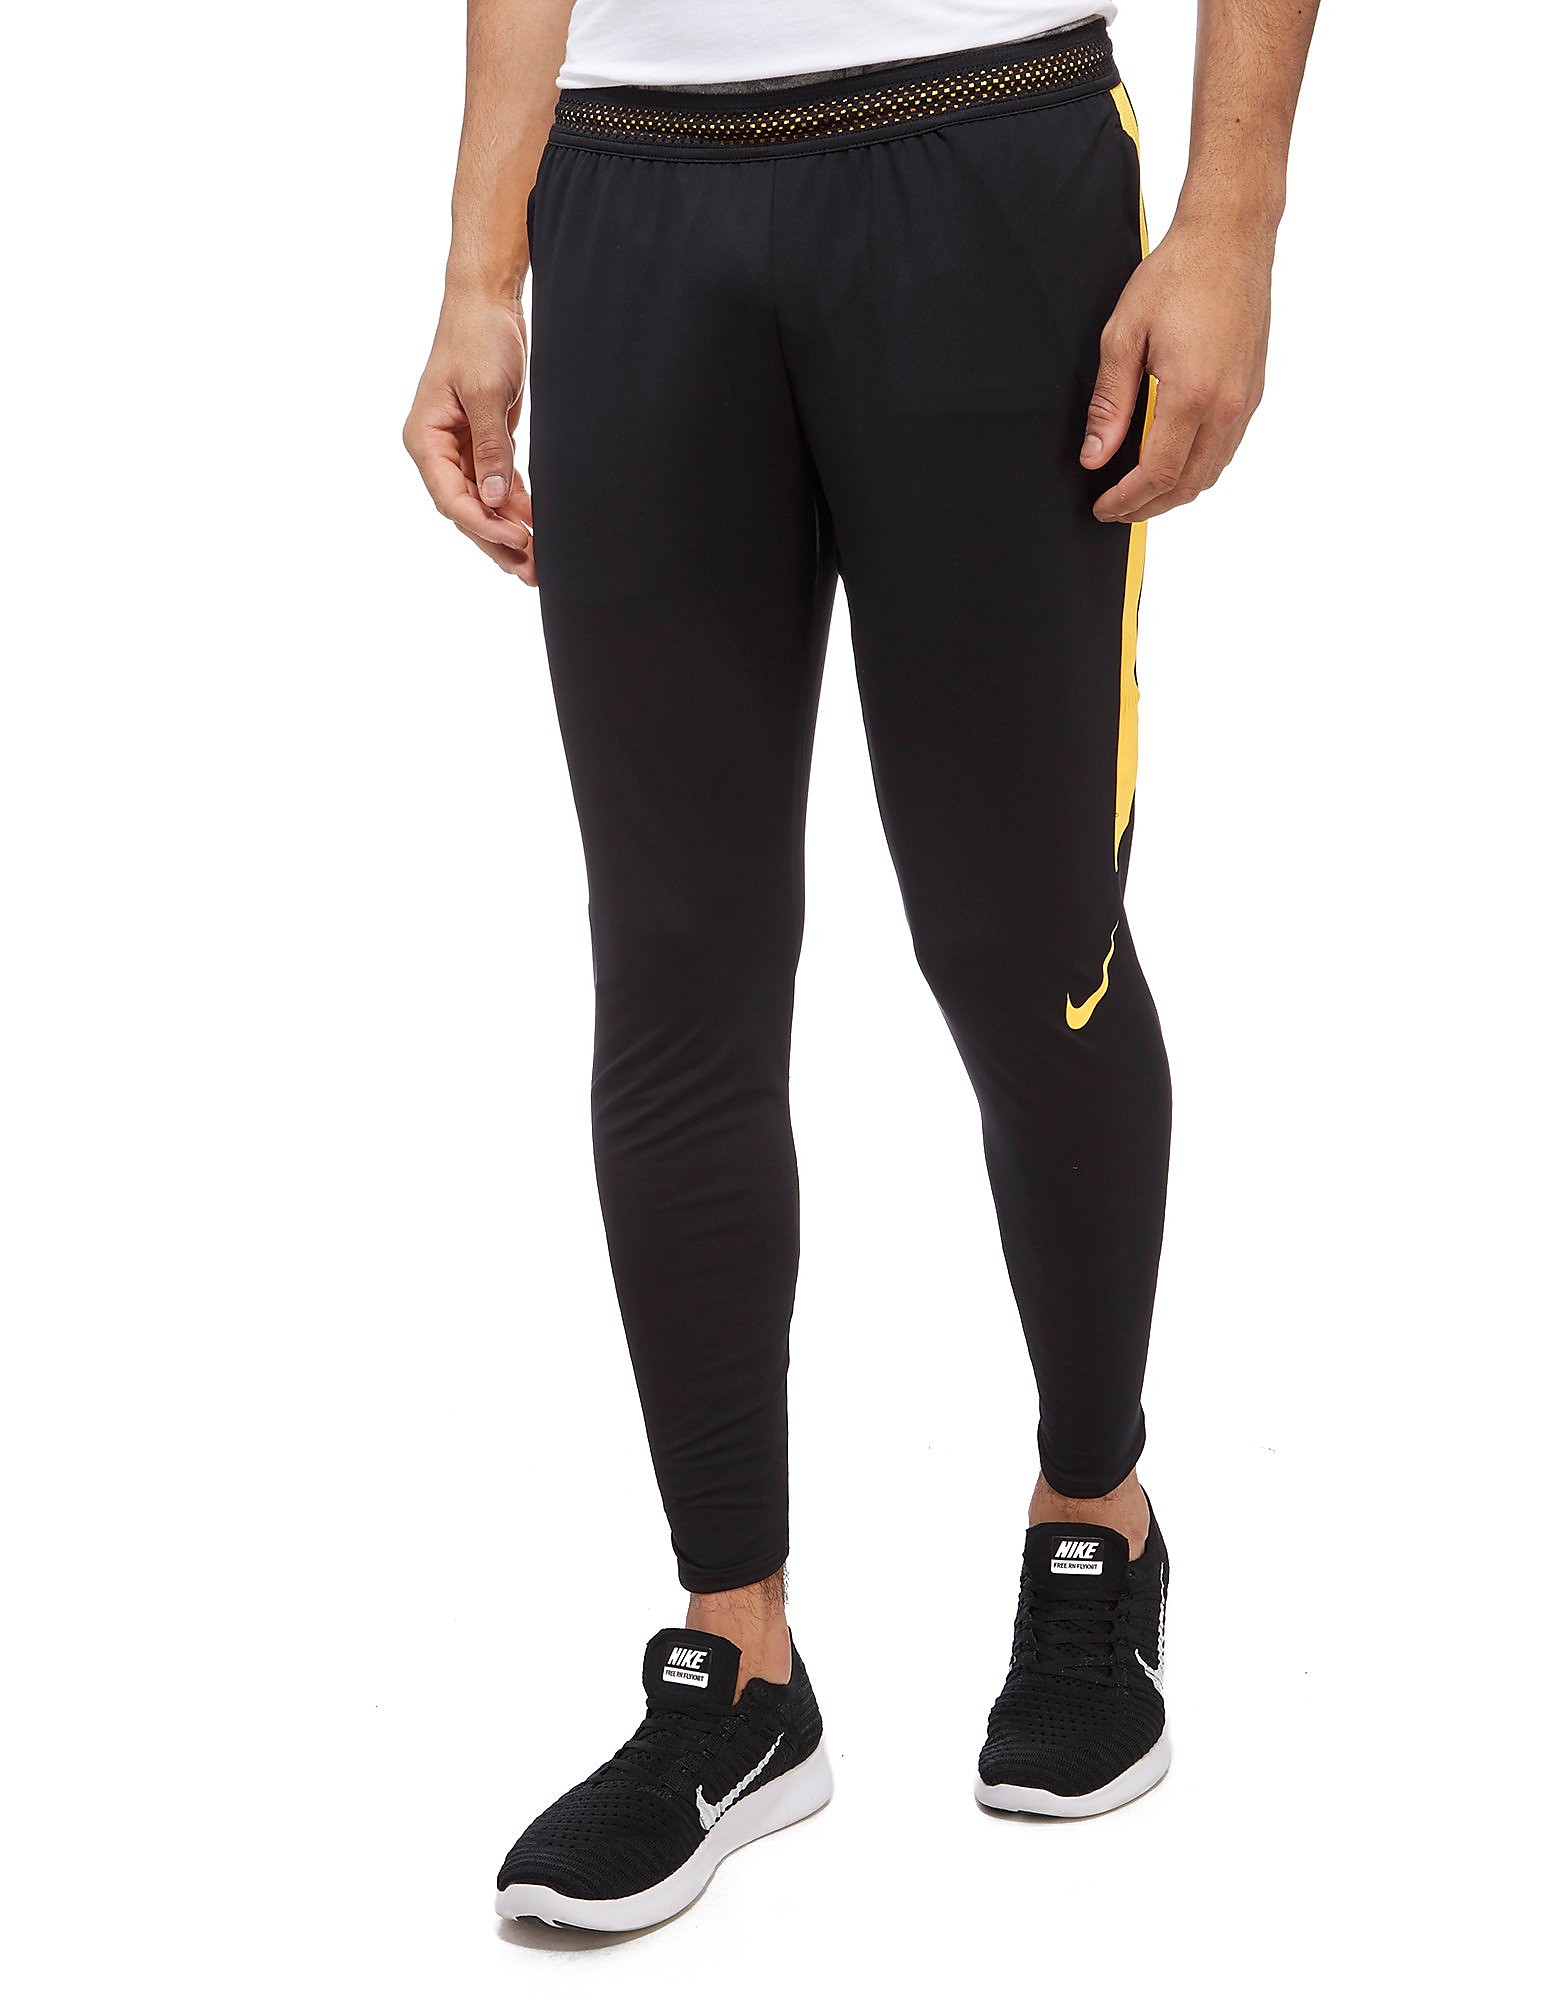 Nike Dry Strike Football Pants